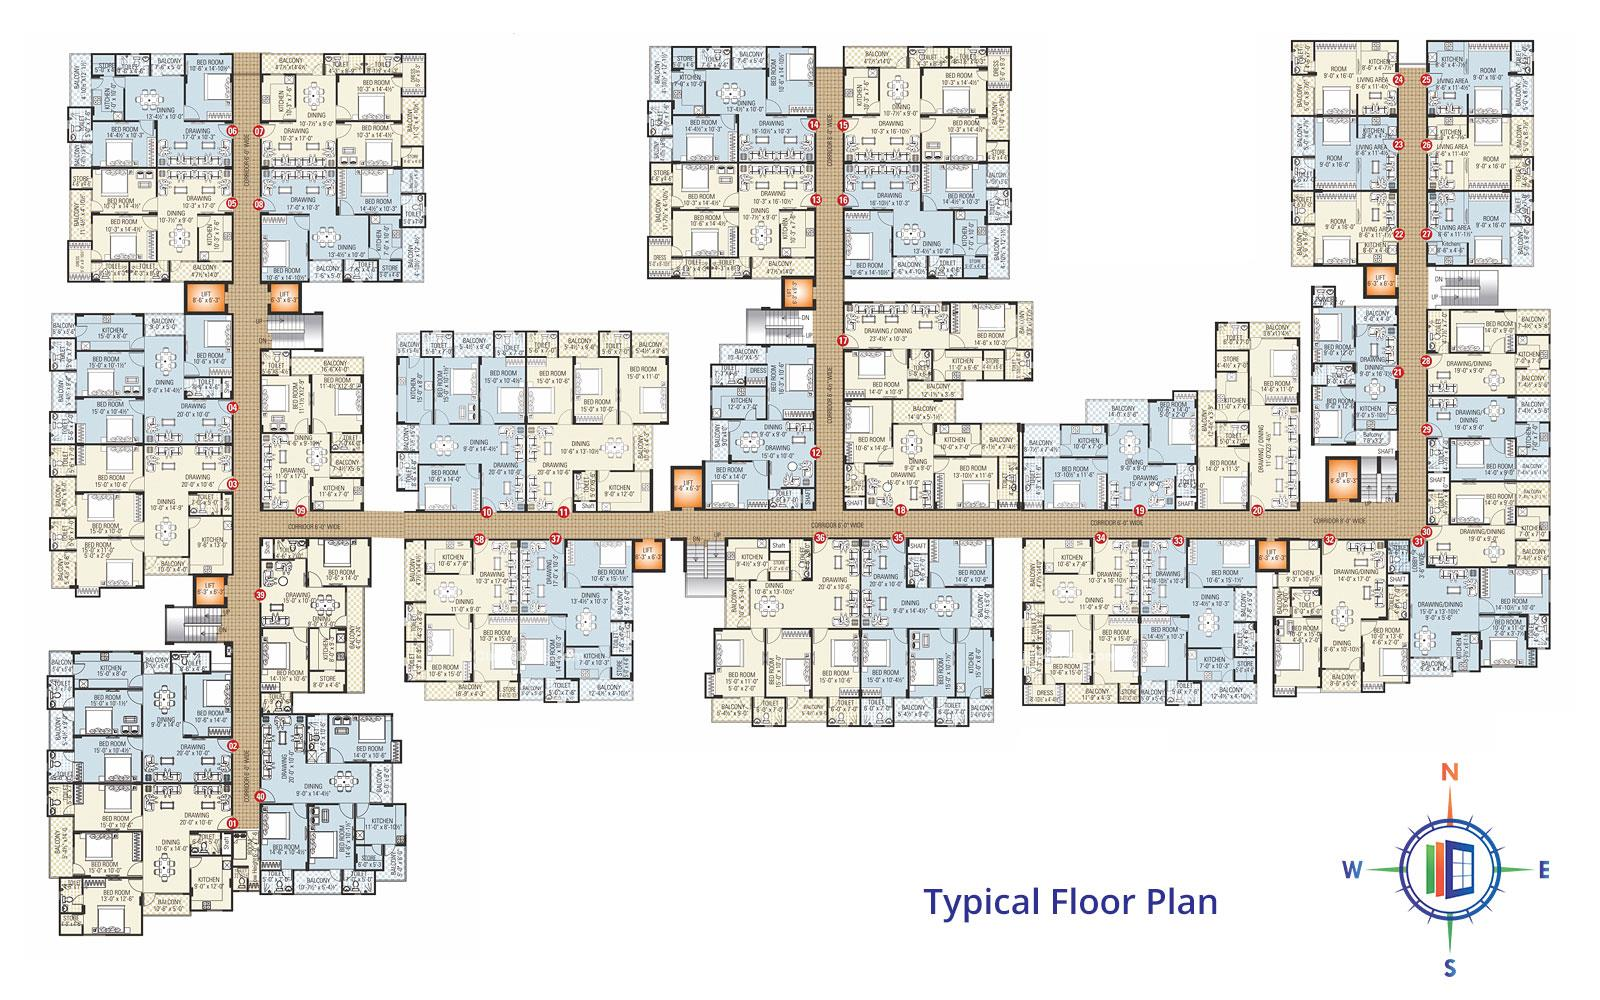 Silver Crown Typical Floor Plan